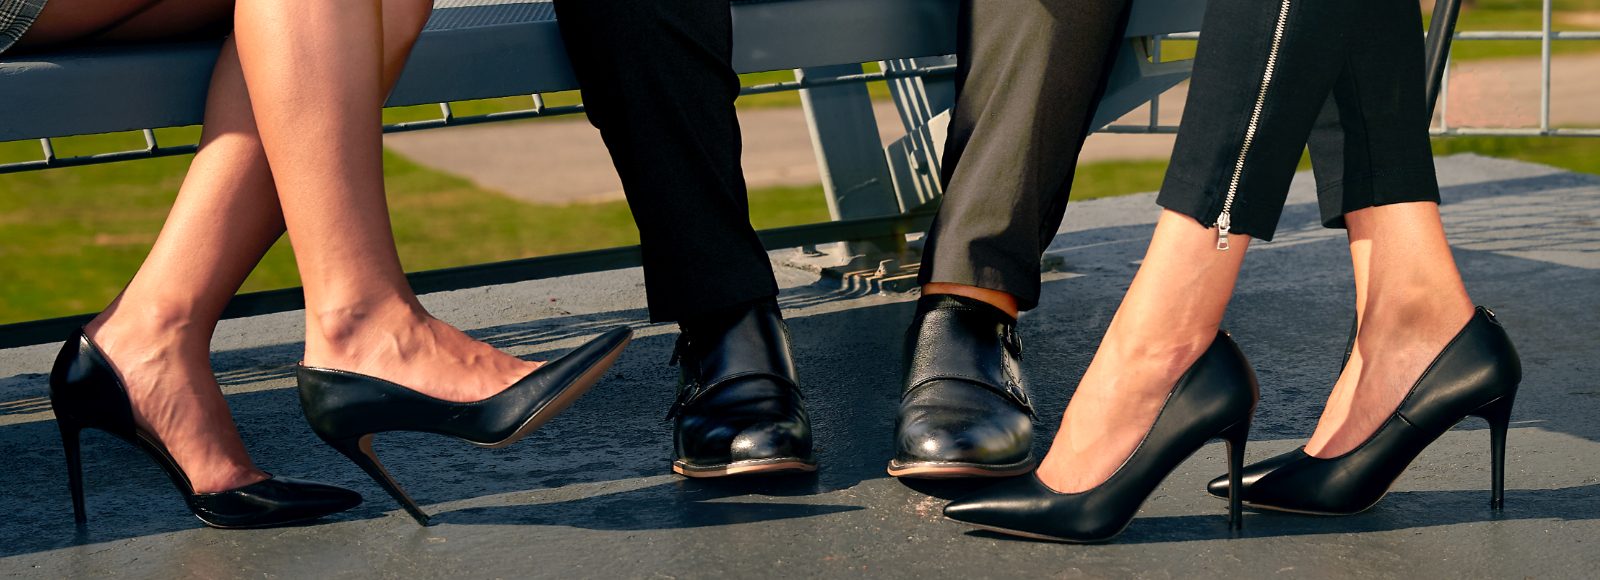 Focused on their feet, two women and a man sit on a bench in black leather shoes treated with Sof Sole® shoecare.